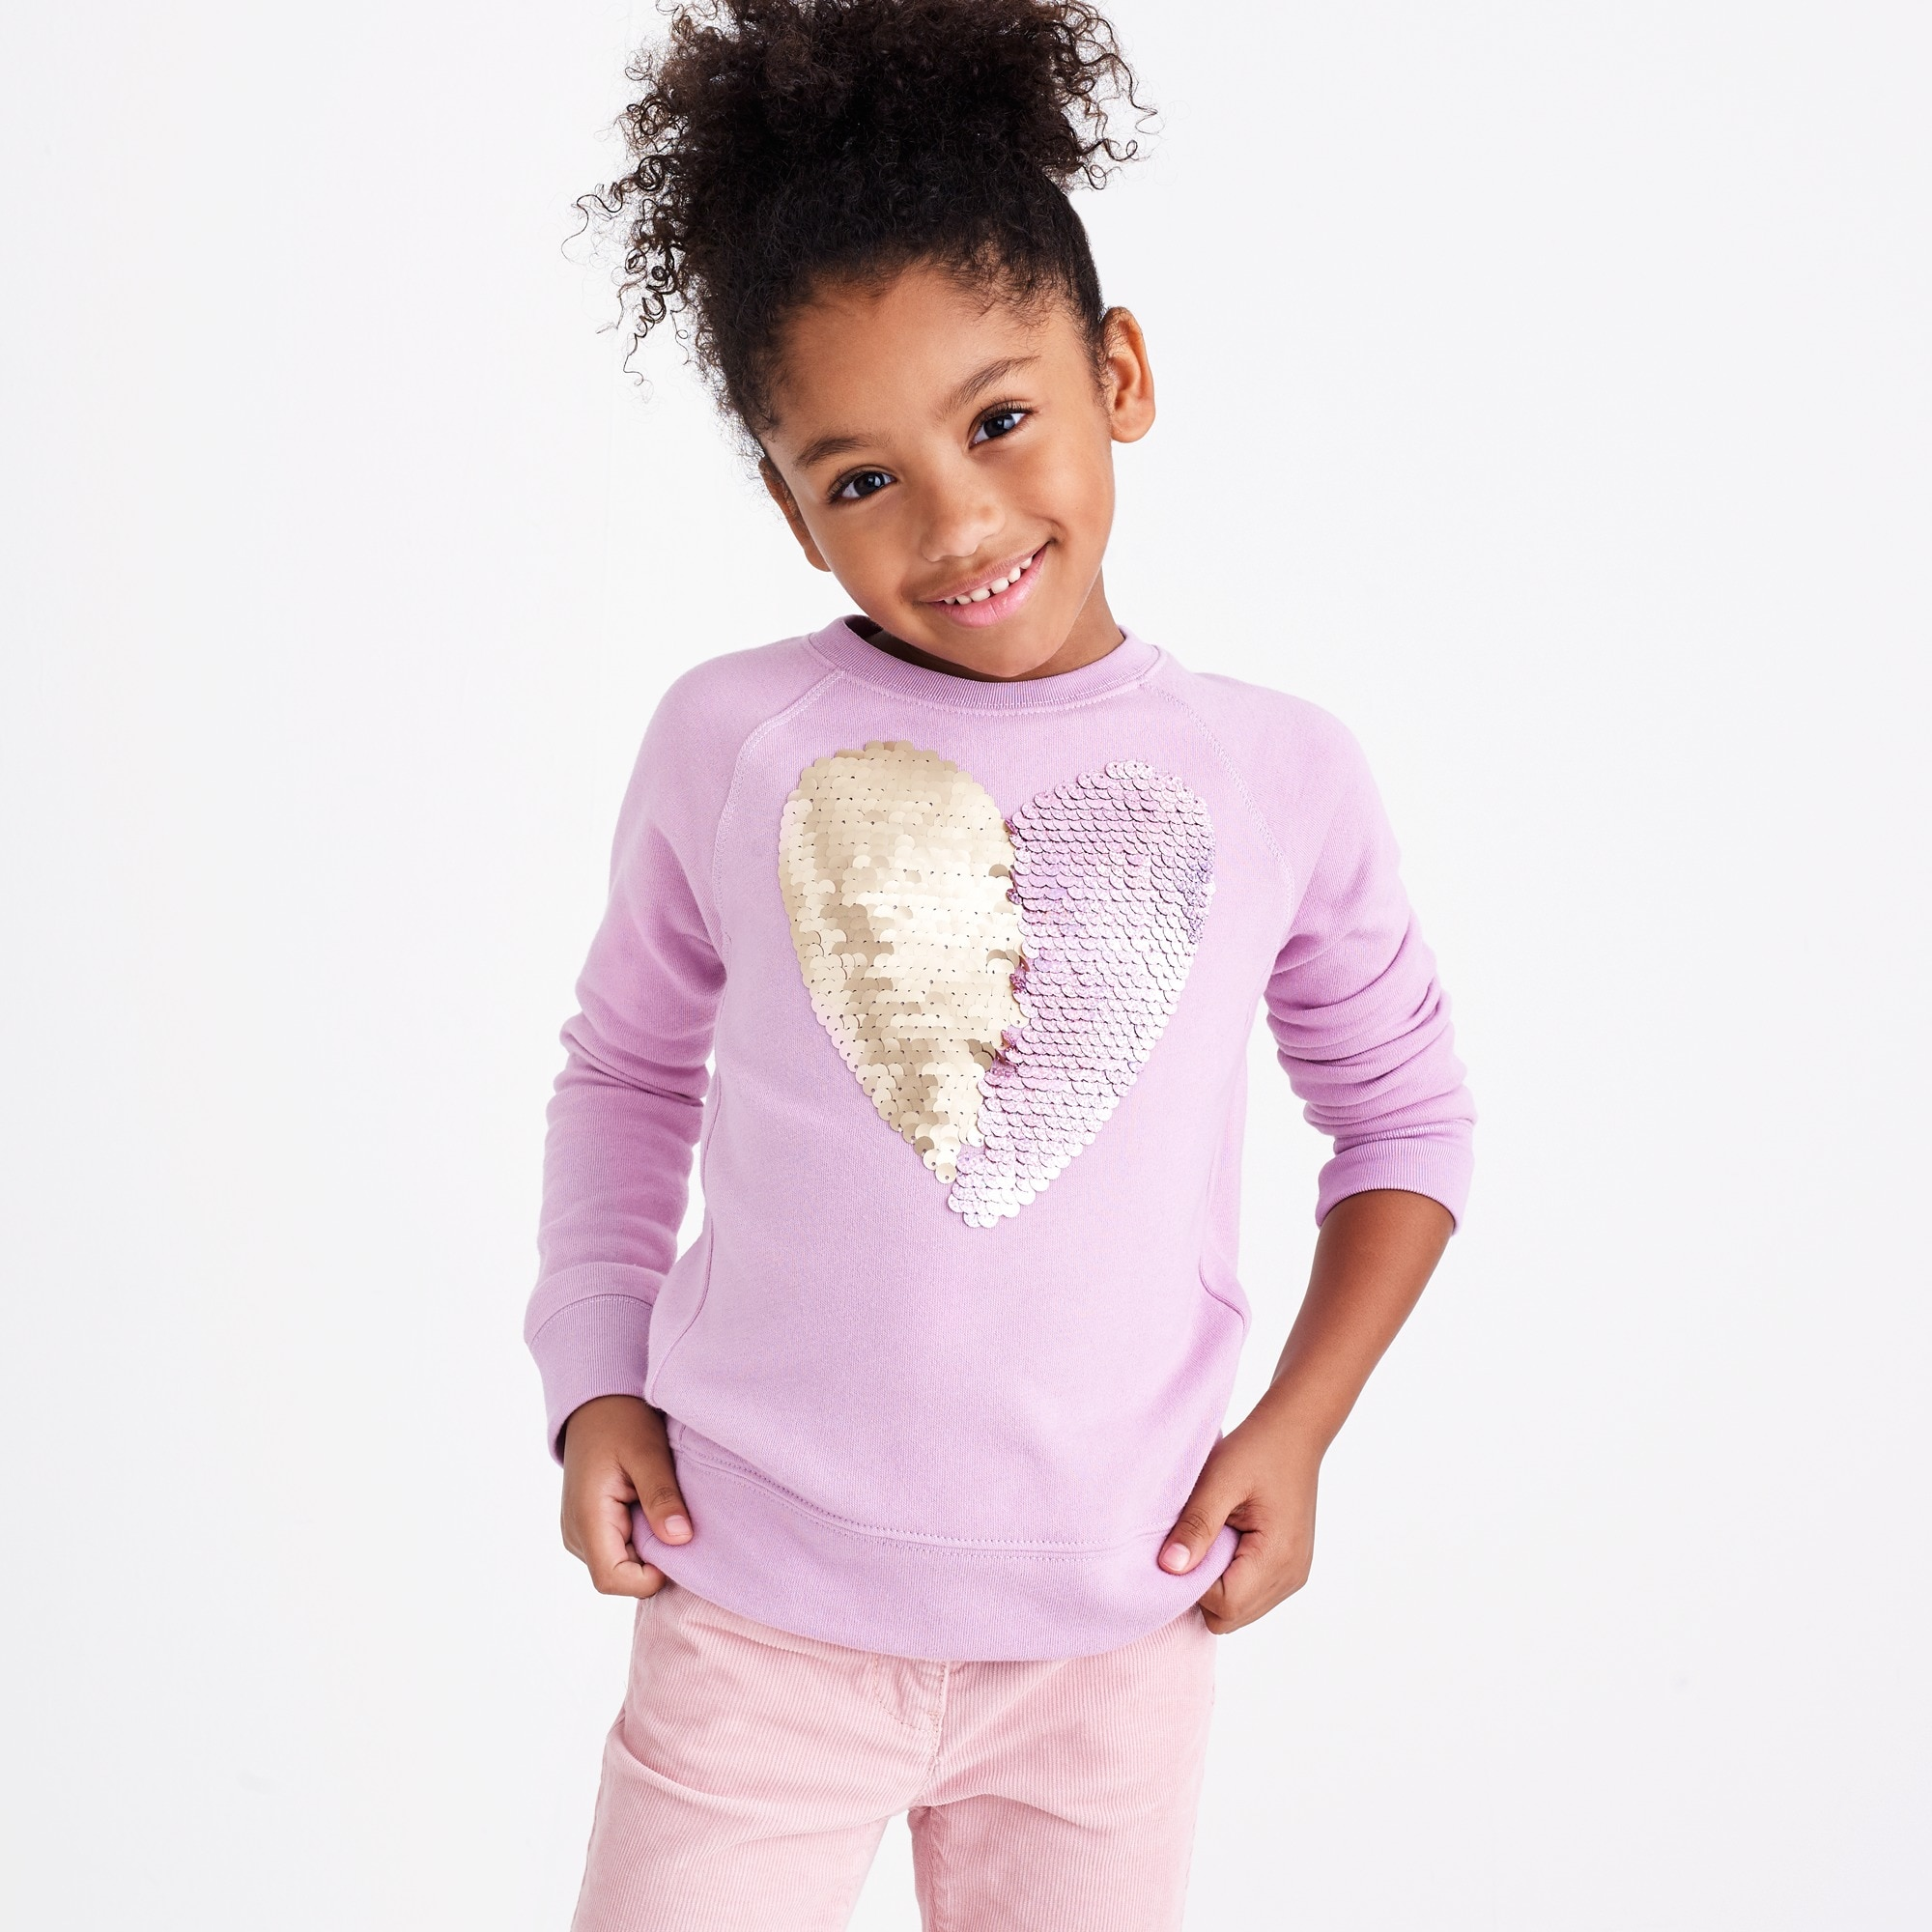 Image 3 for Girls' sequin heart sweatshirt